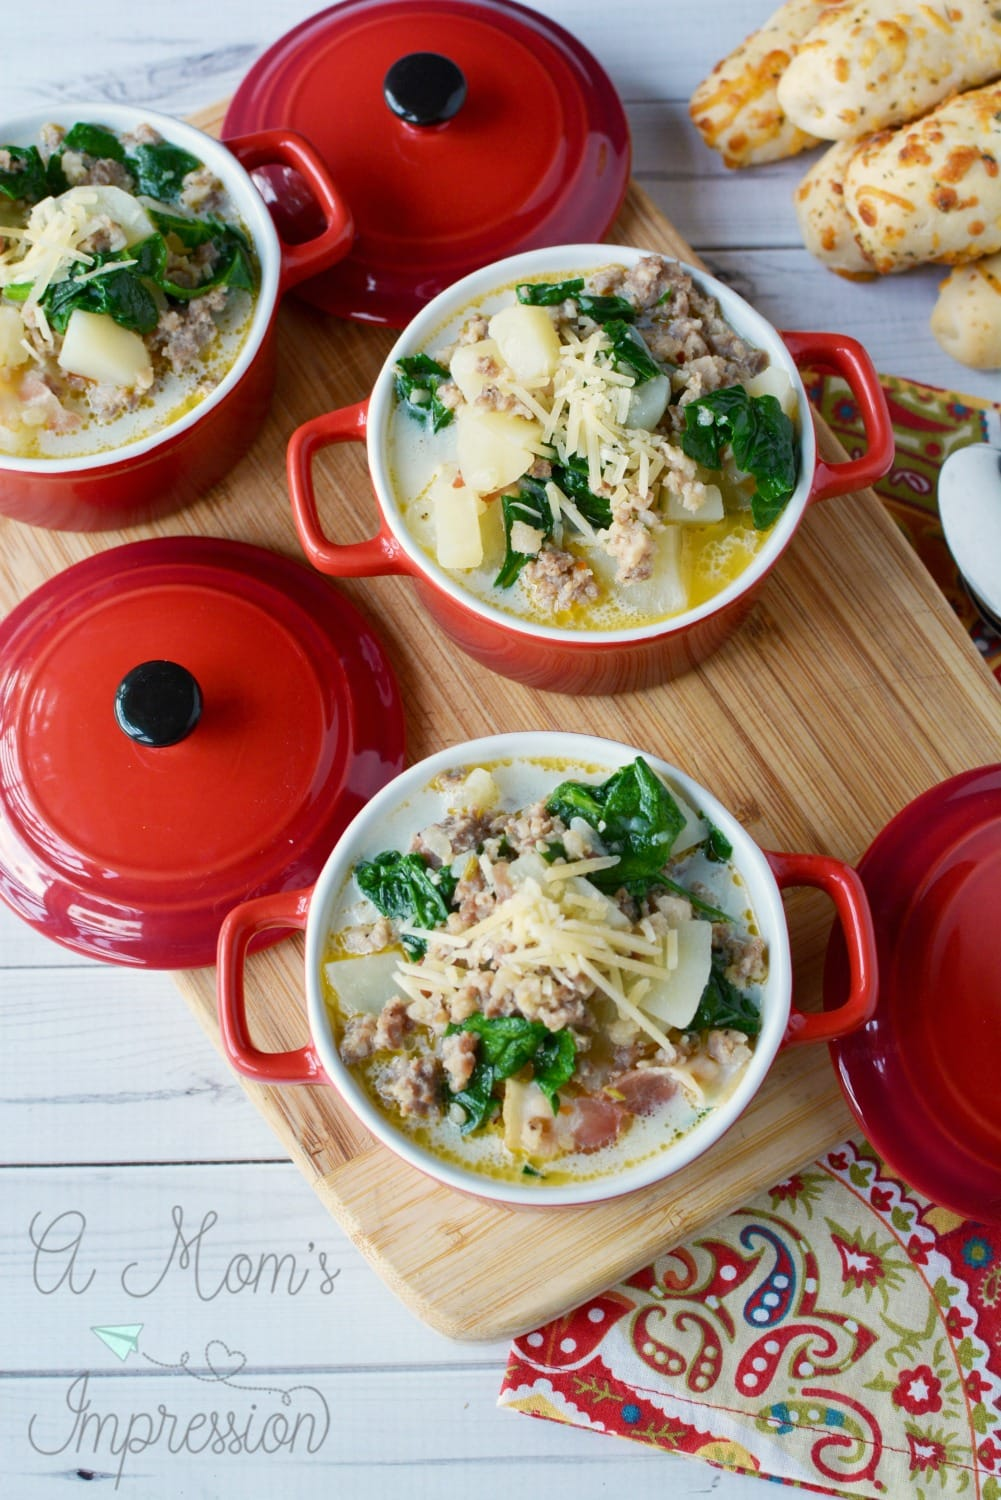 Quick Dinner Solutions For The Busy Back To School Season